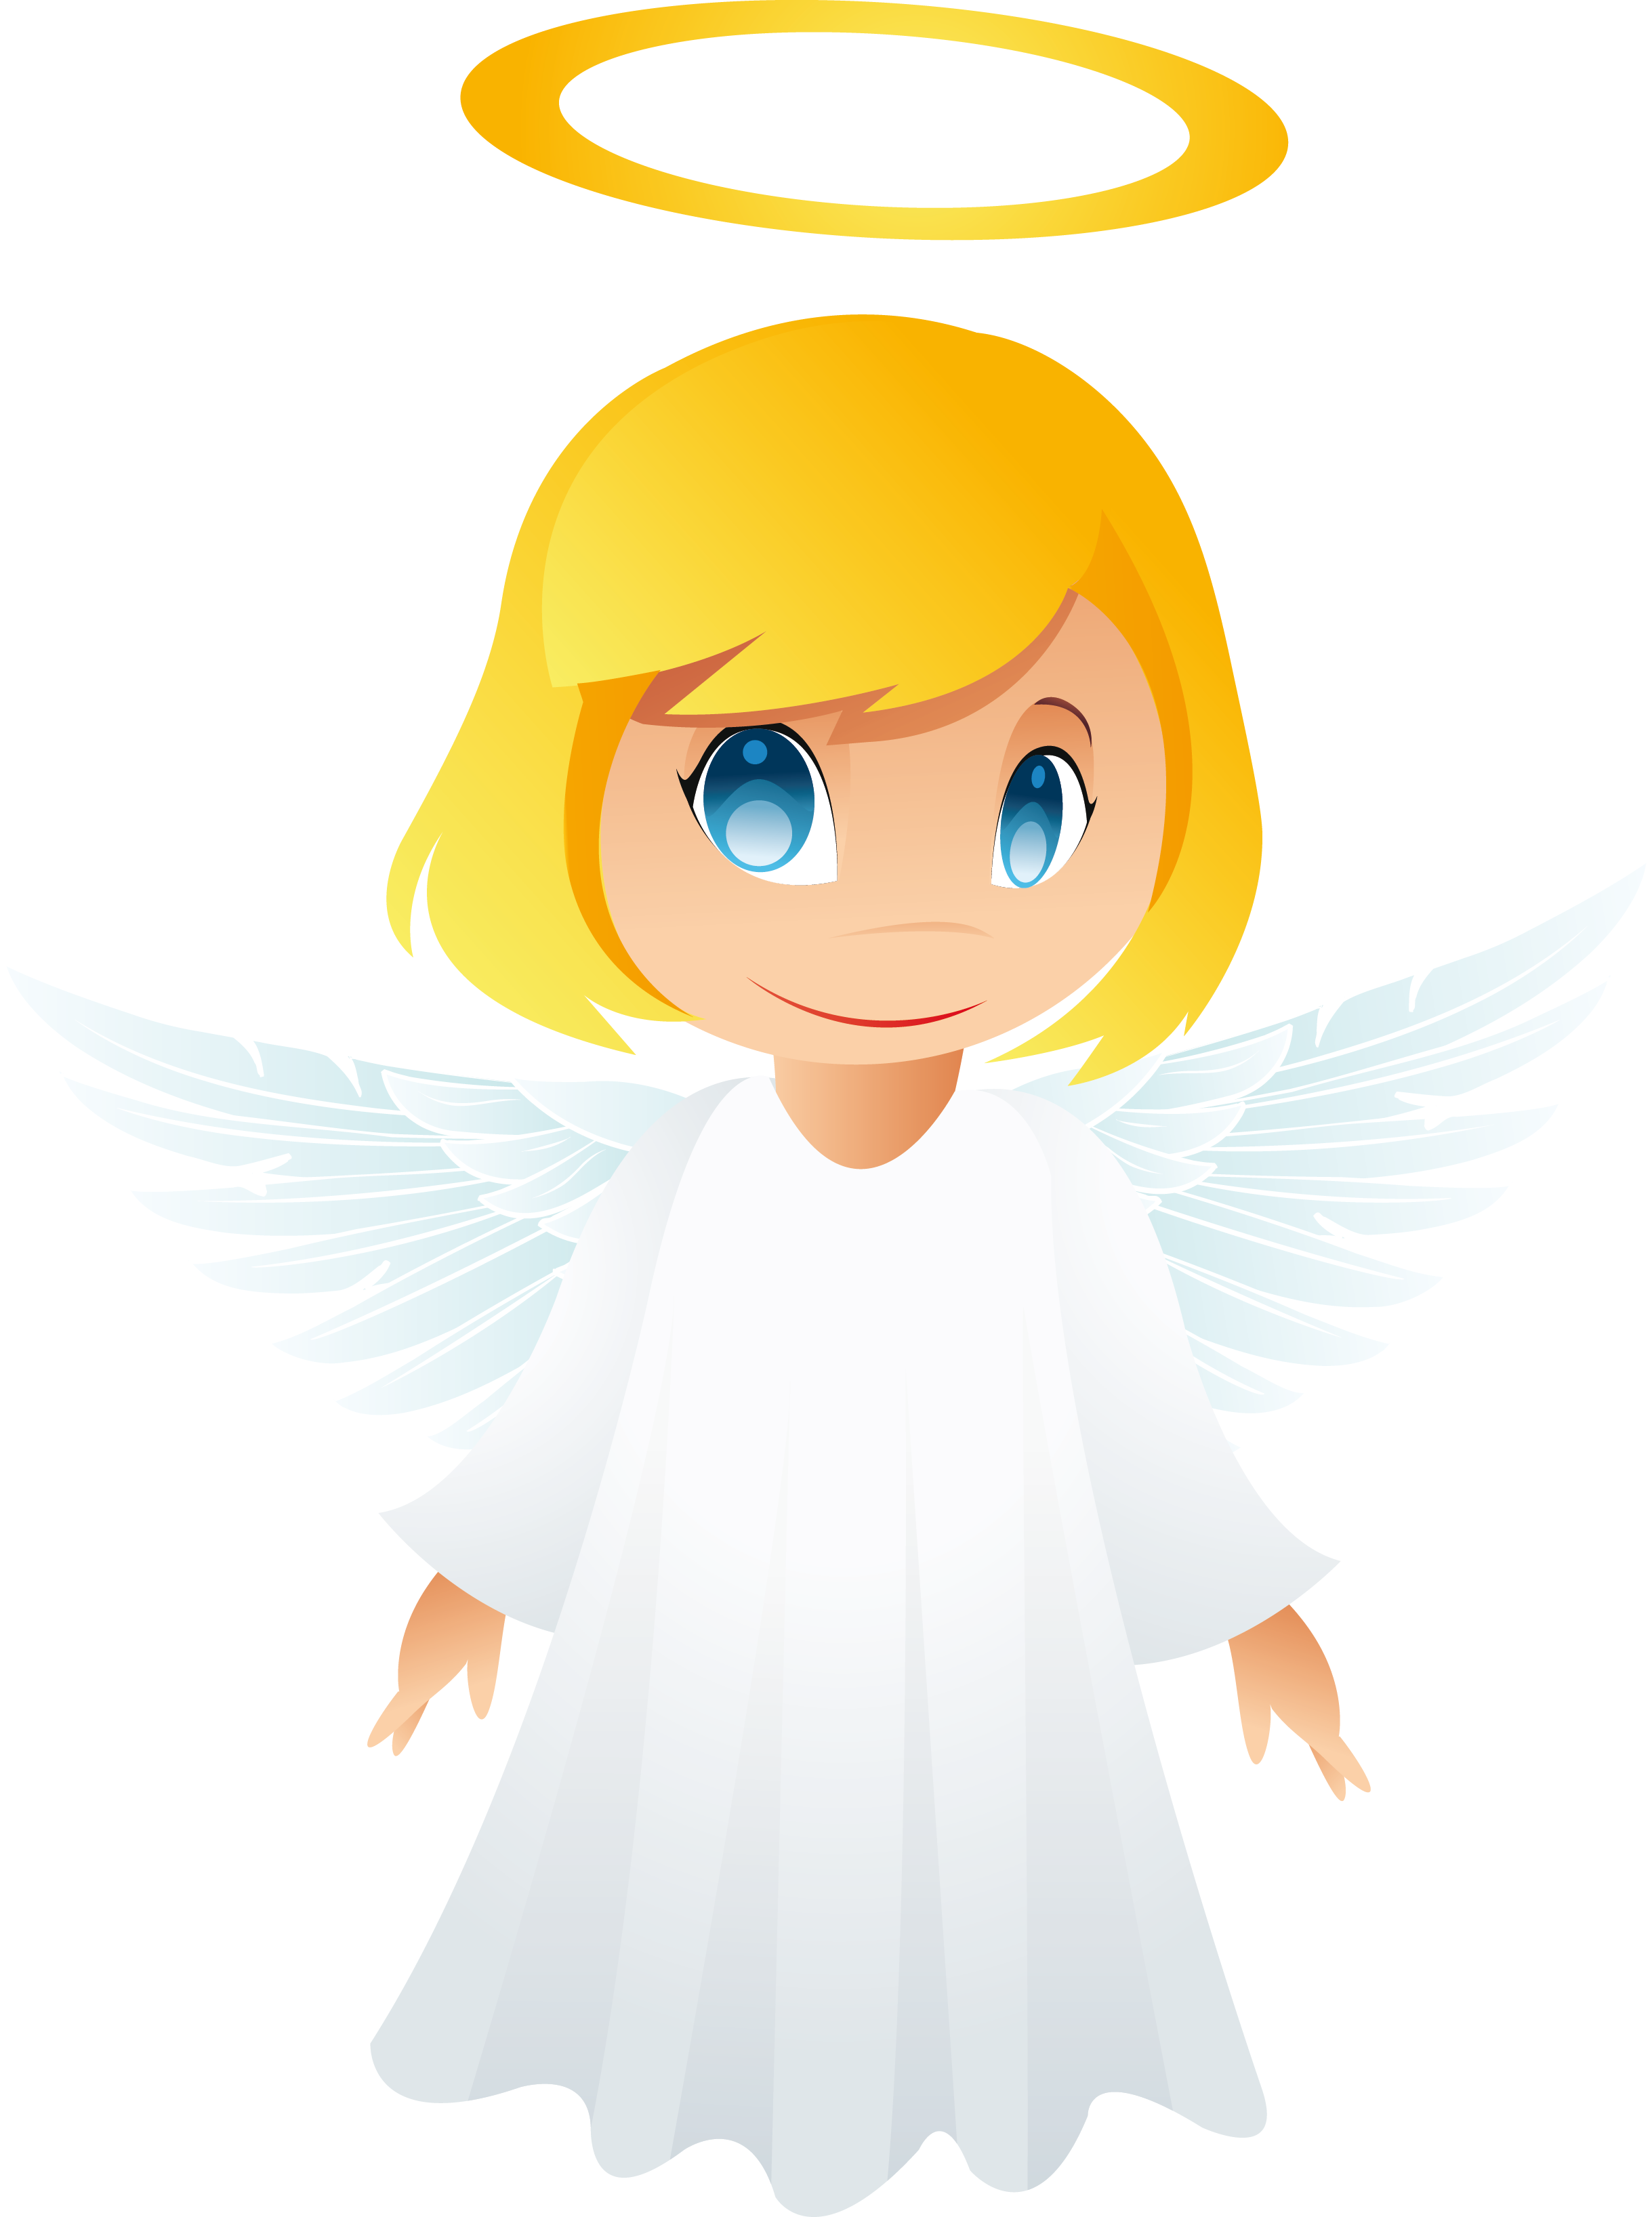 angel clipart free graphics of cherubs and angels the cliparts rh pinterest com christmas angel clipart images christmas angel clipart black and white free